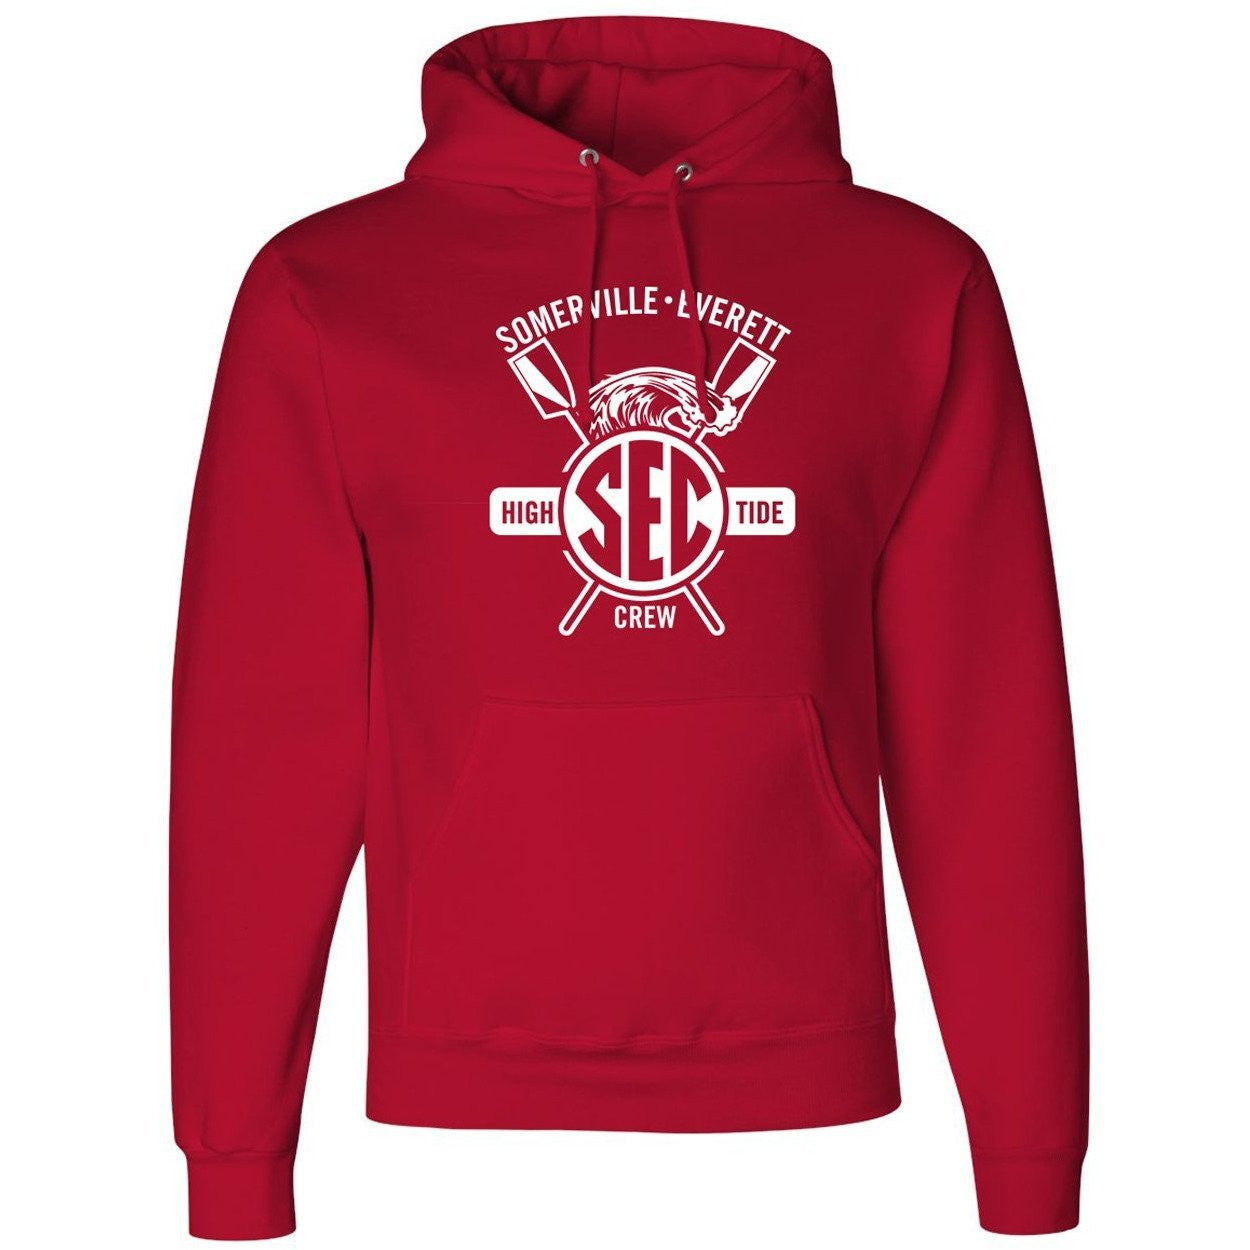 50/50 Hooded Somerville-Everett High Tide Crew Pullover Sweatshirt